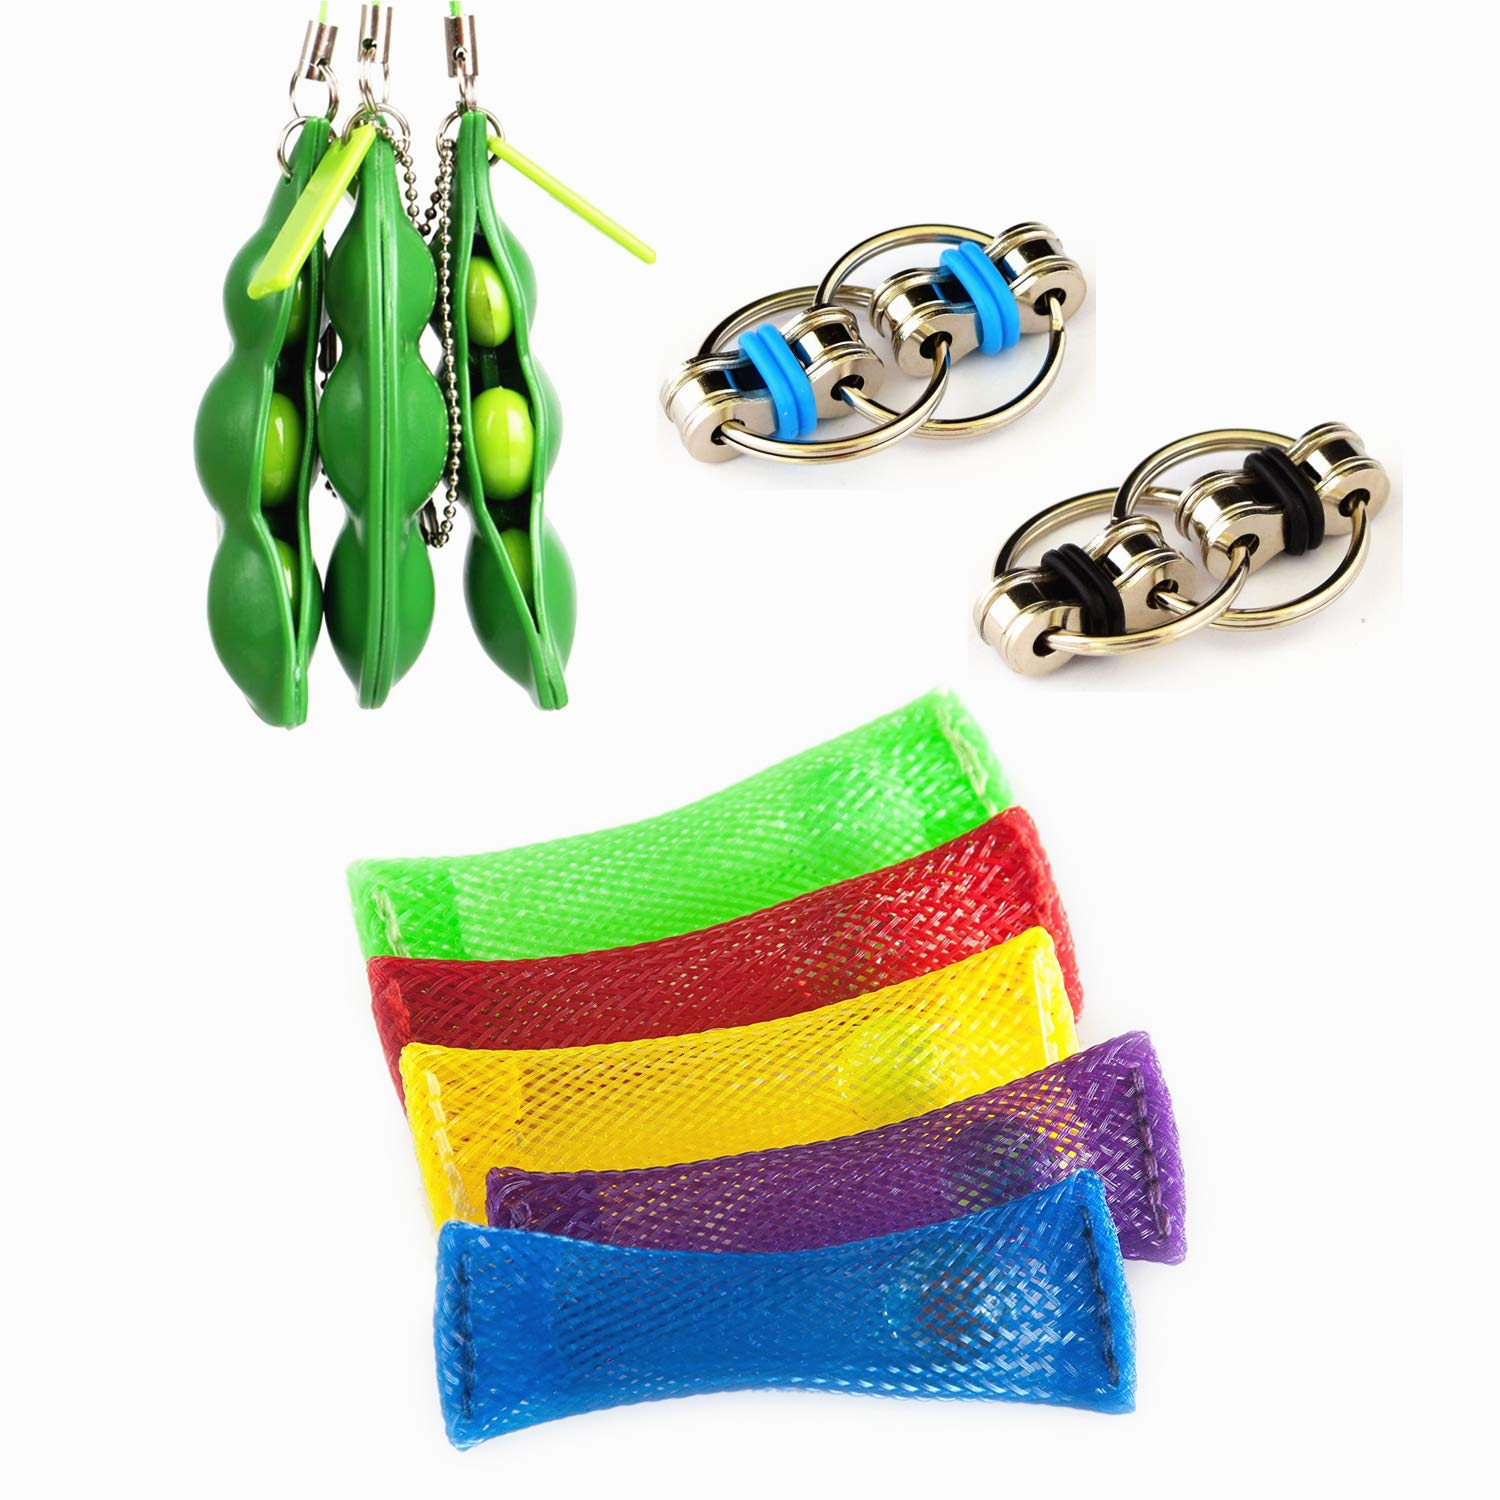 Sensory Decompression Fidget Toys Sets (10 Pieces) Mesh Marble, Flippy Chain, Squeeze-a-Bean Soybean Keychain for Kids Adults Relieve Stress Increase Focus ADHD ADD Autism Anxiety Relief Toys (B)